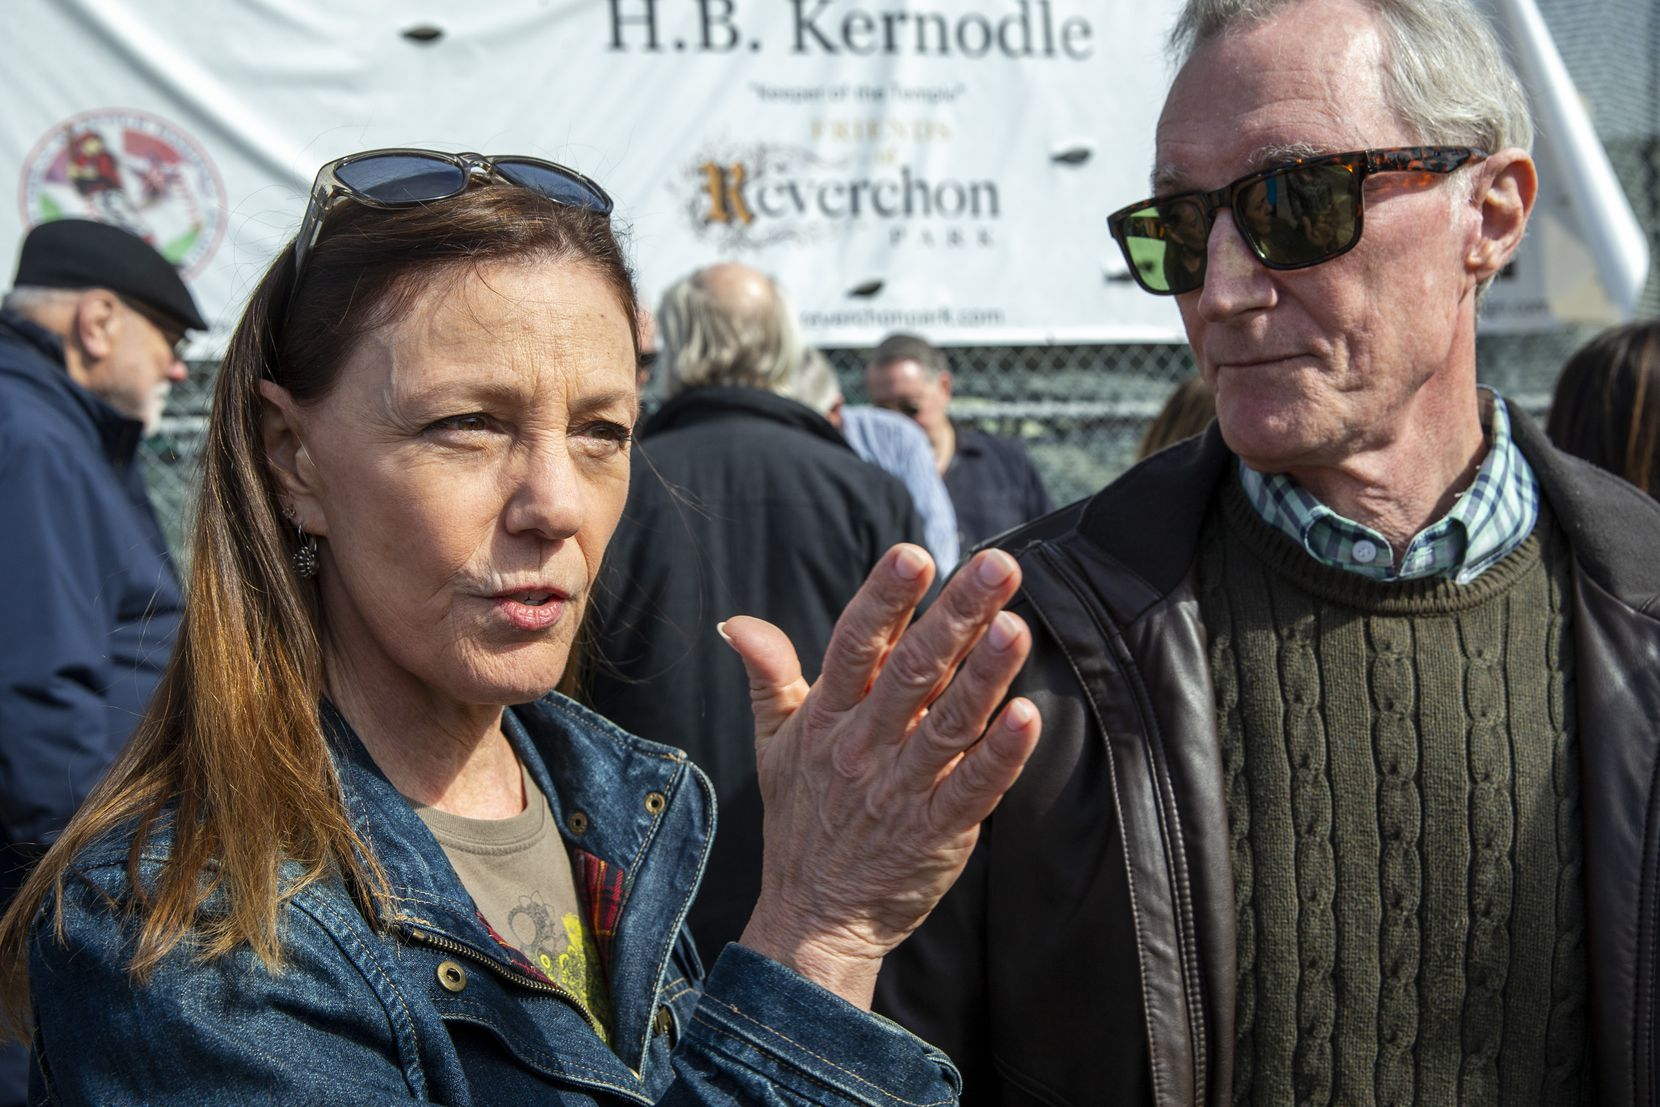 Charlotte (left) and Robert Barner talk about the potential ramifications of a privately developed baseball field during a press conference at Reverchon Park in the Oak Lawn area of Dallas on Friday. The Barners filed a lawsuit against the City of Dallas for allowing a private developer to build a baseball stadium in the park without seeking community input.